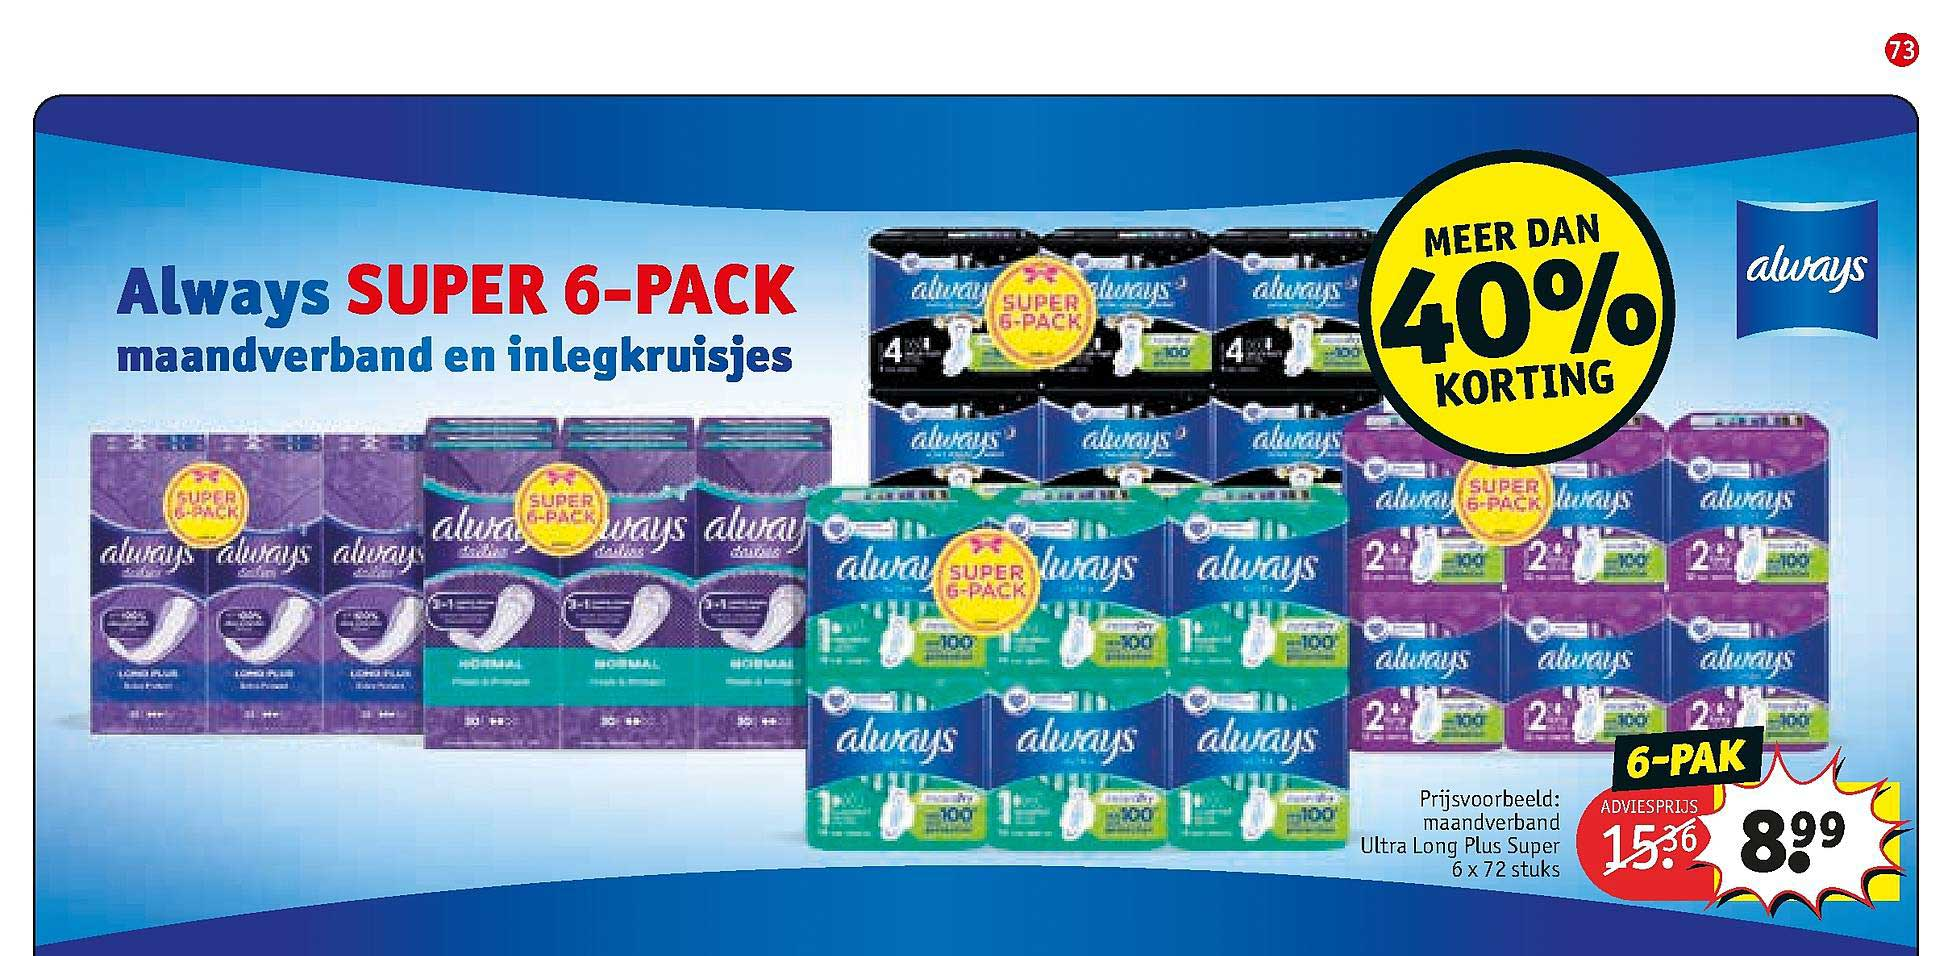 Kruidvat Always Super 6-Pack Maandverband En Inlegkruisjes